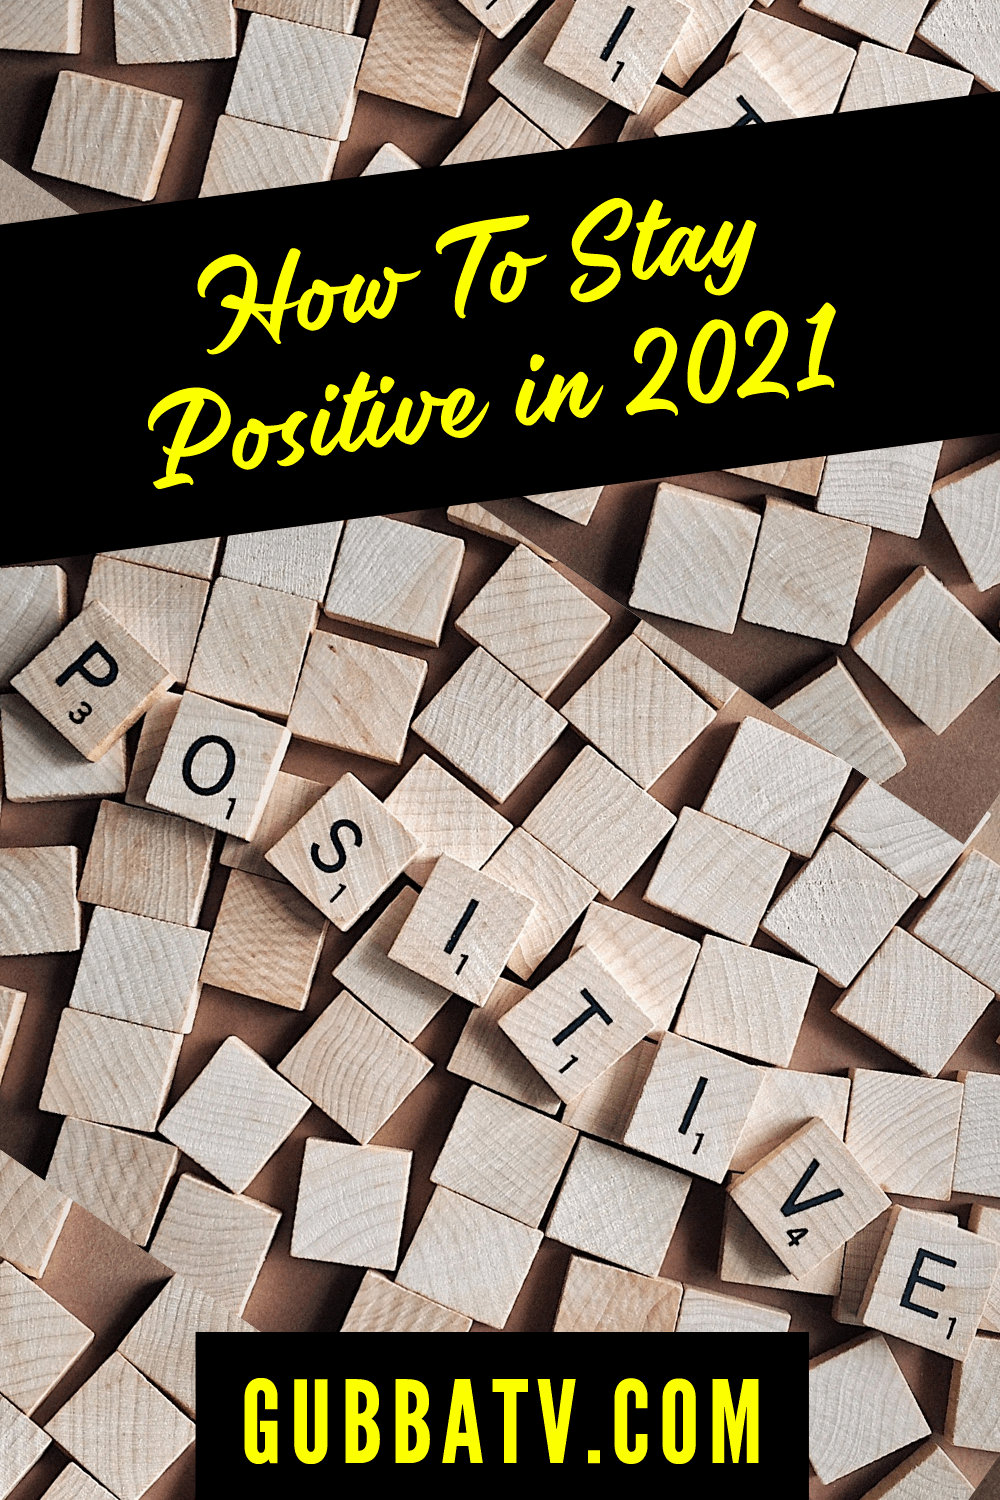 How To Stay Positive in 2021